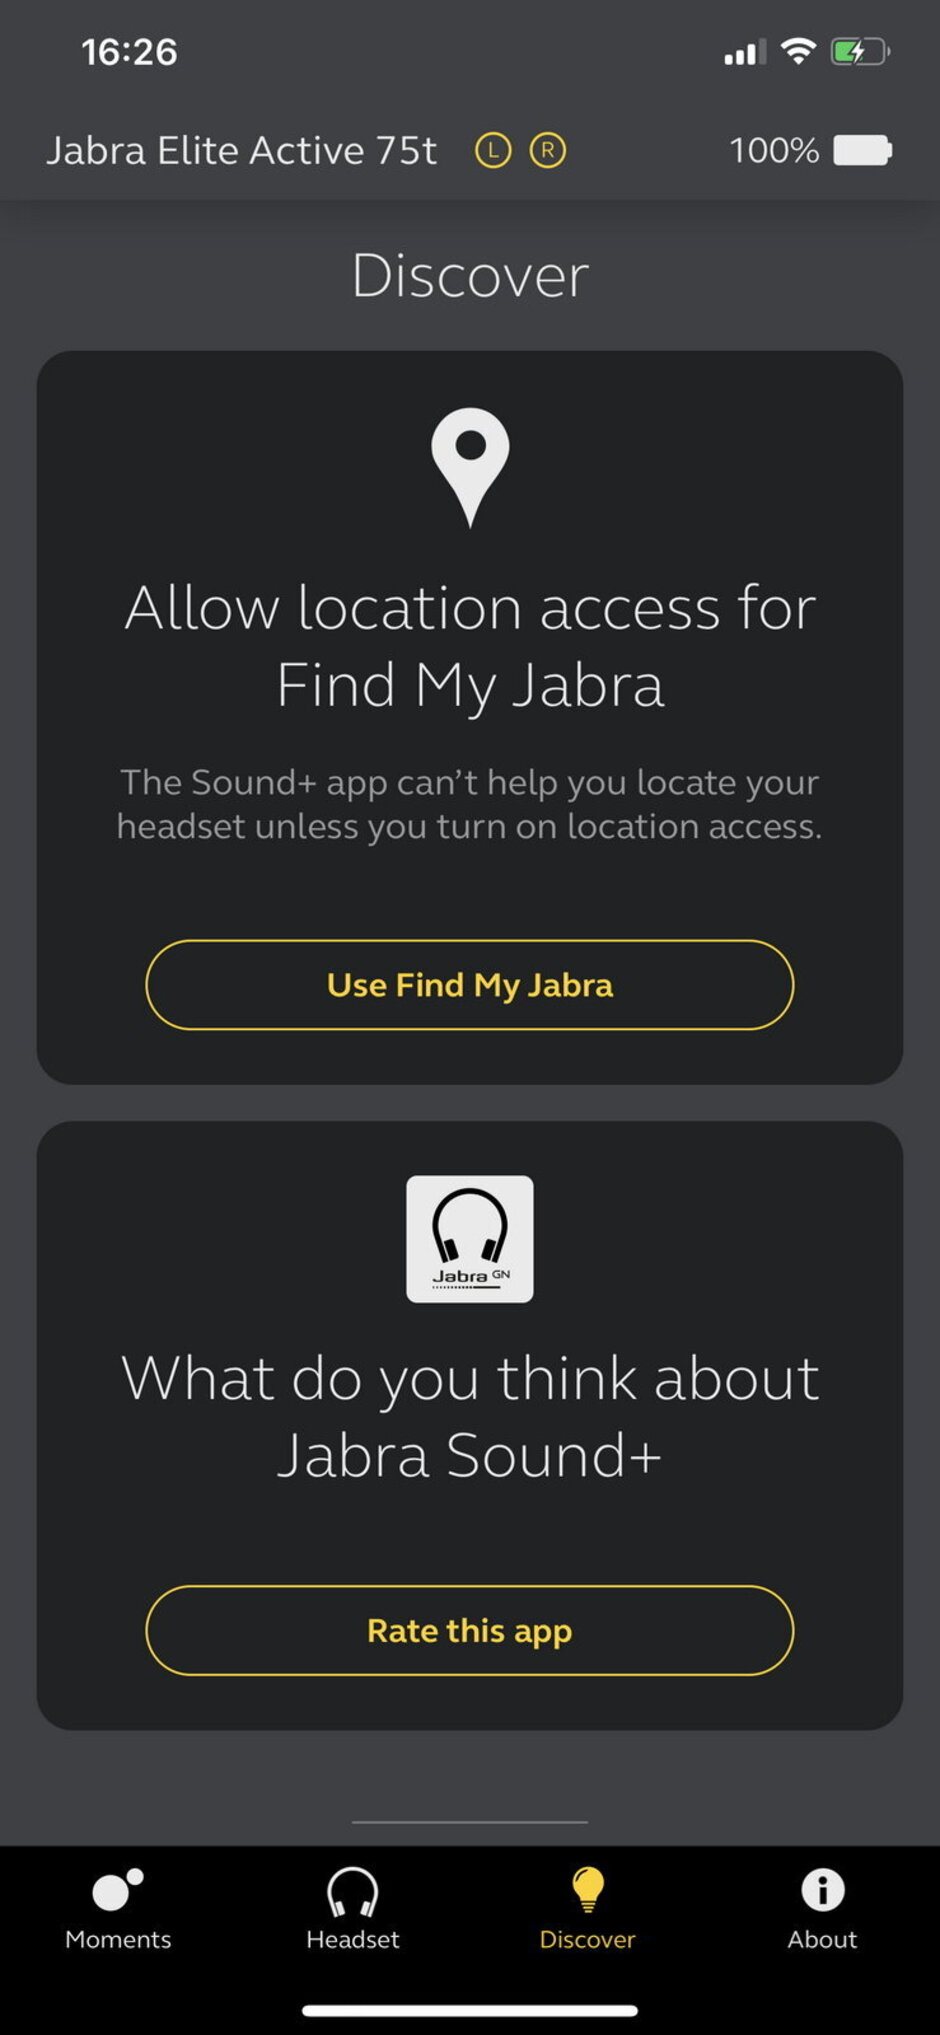 تطبيق Jabra Sound + - مراجعة Jabra Elite Active 75t